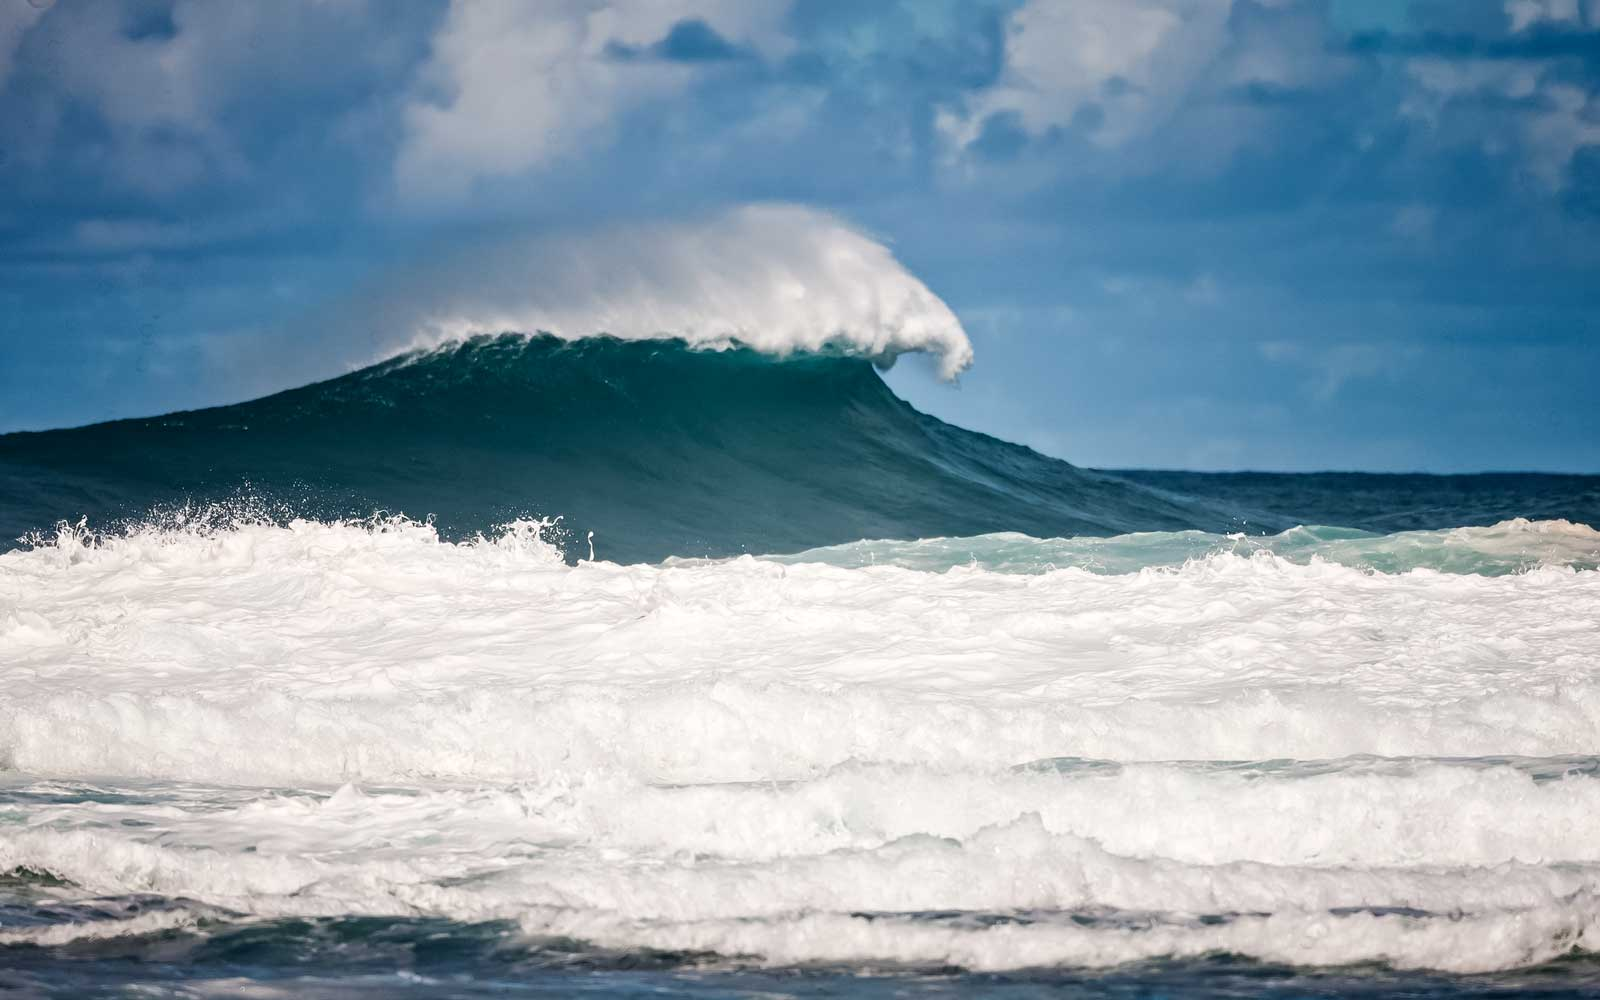 Wave breaking off the shore in Kappa, Hawaii